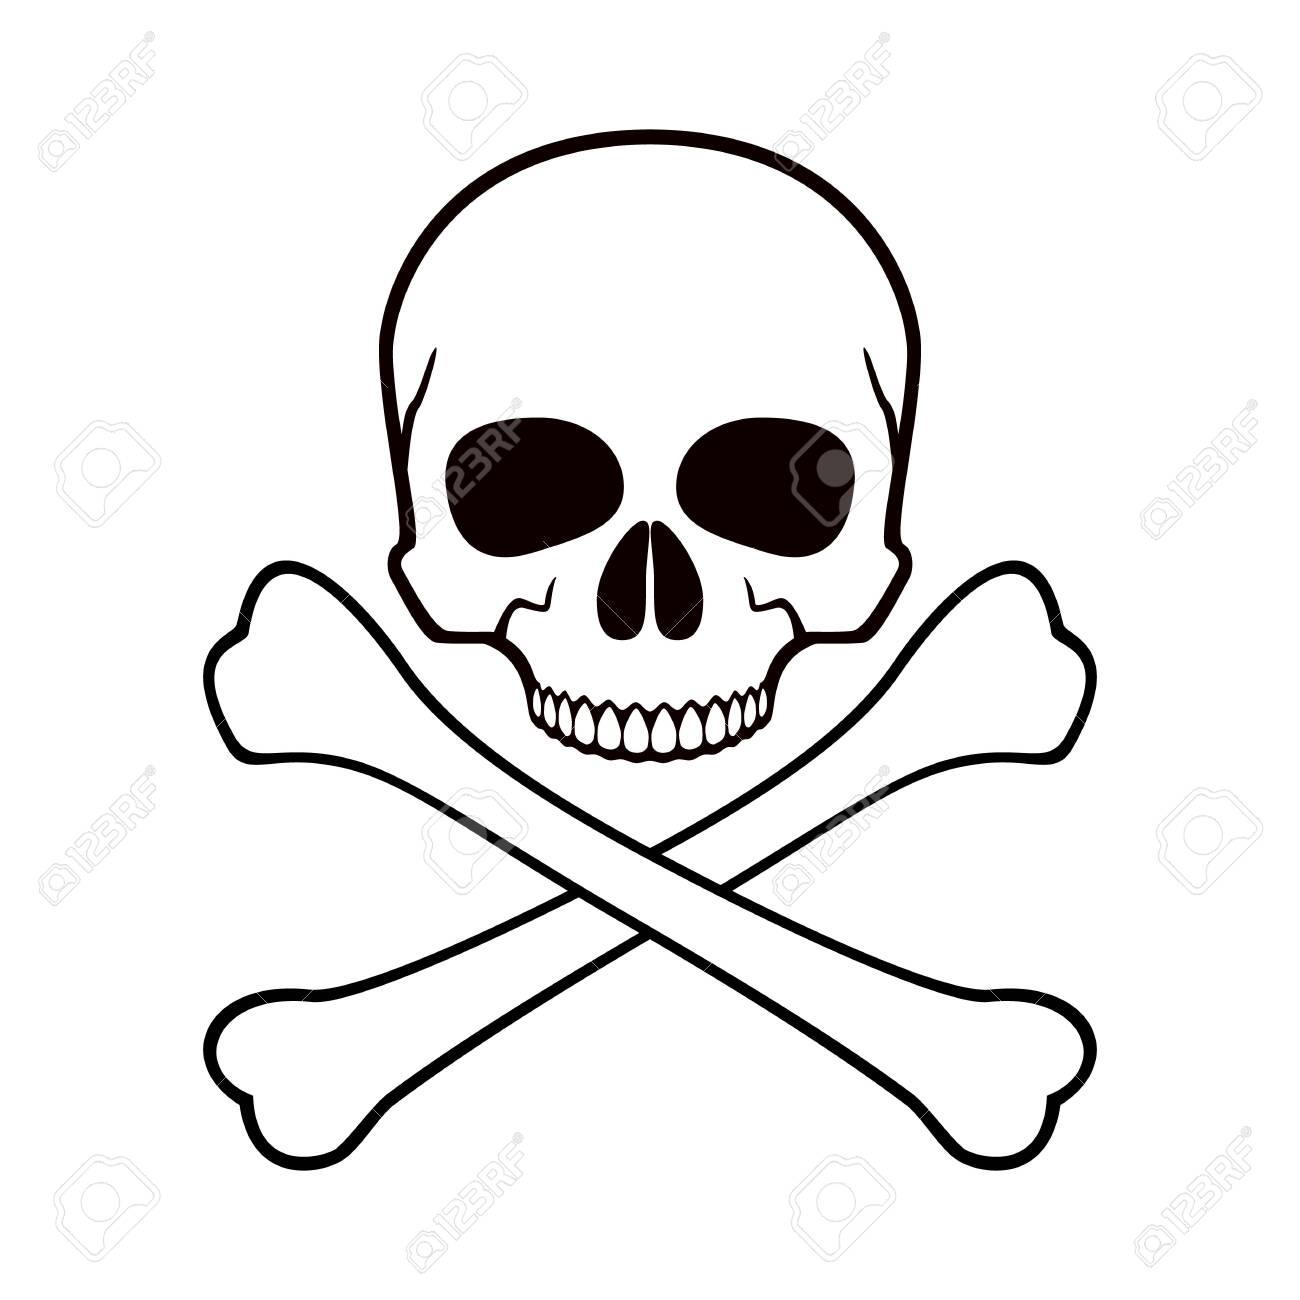 Human Skull Crossbones Symbol Of Danger Abstract Concept Royalty Free Cliparts Vectors And Stock Illustration Image 135459751